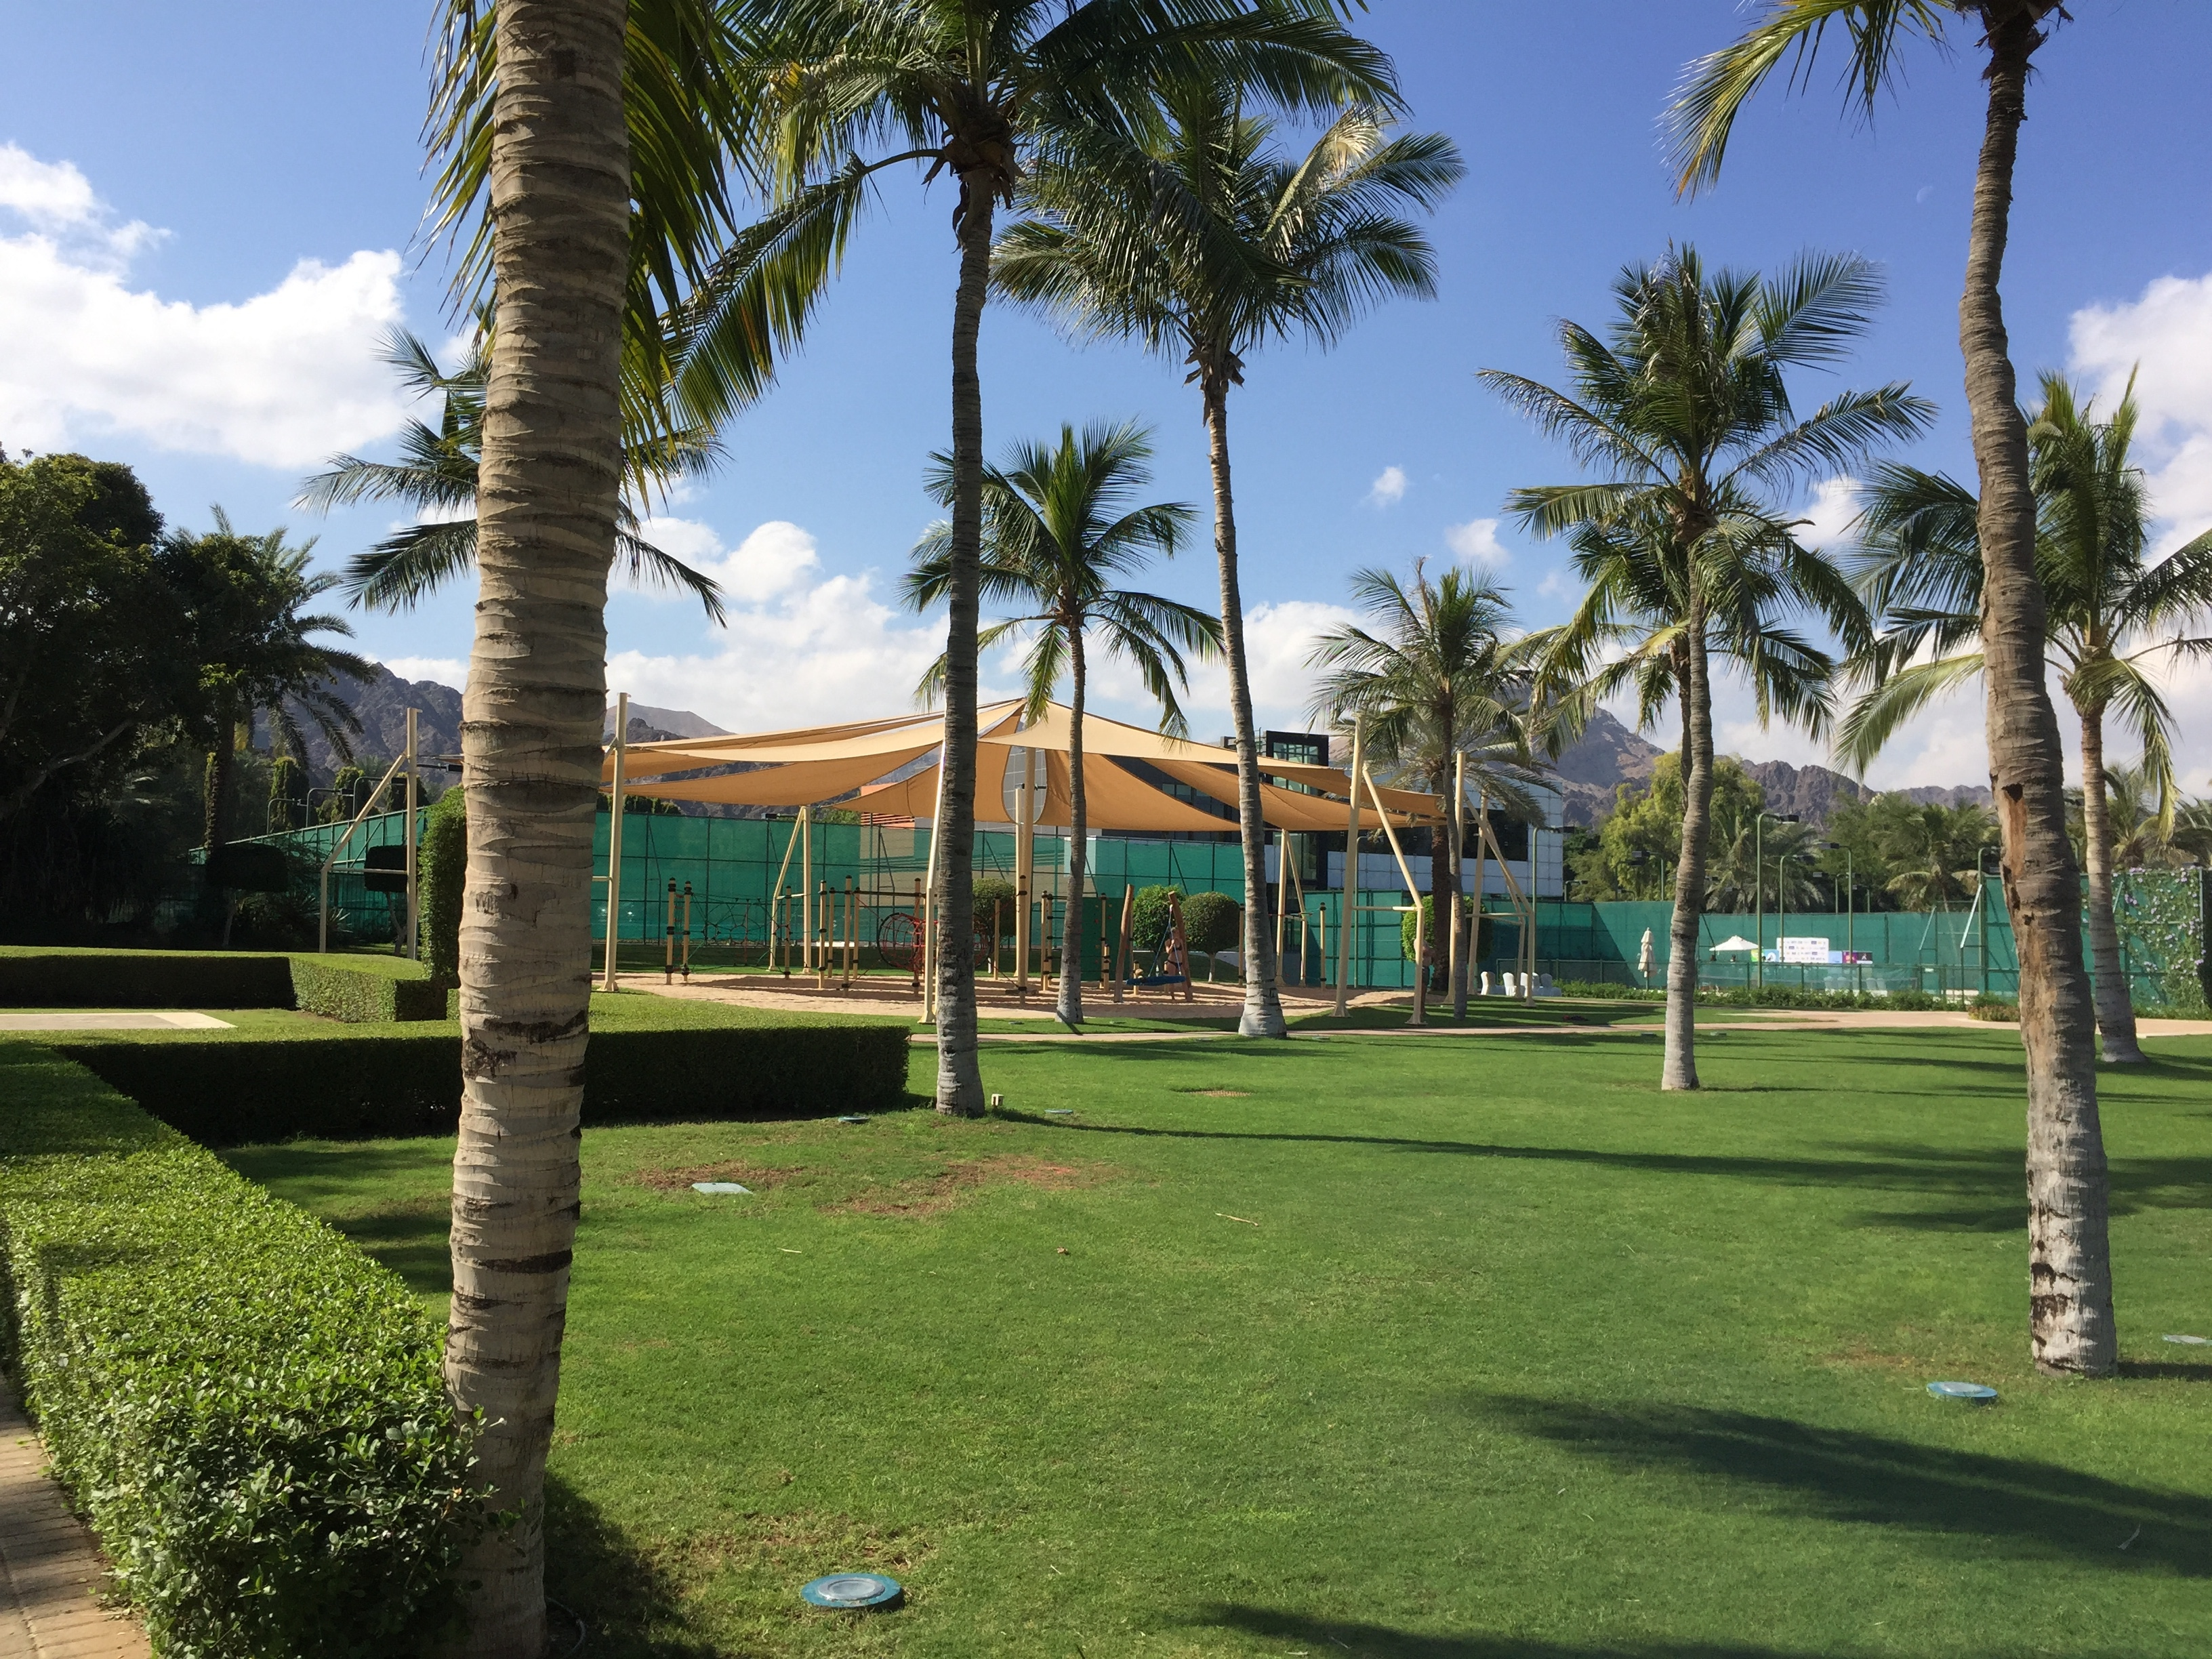 Ritz Kids play area & tennis courts - Al Bustan Palace Muscat